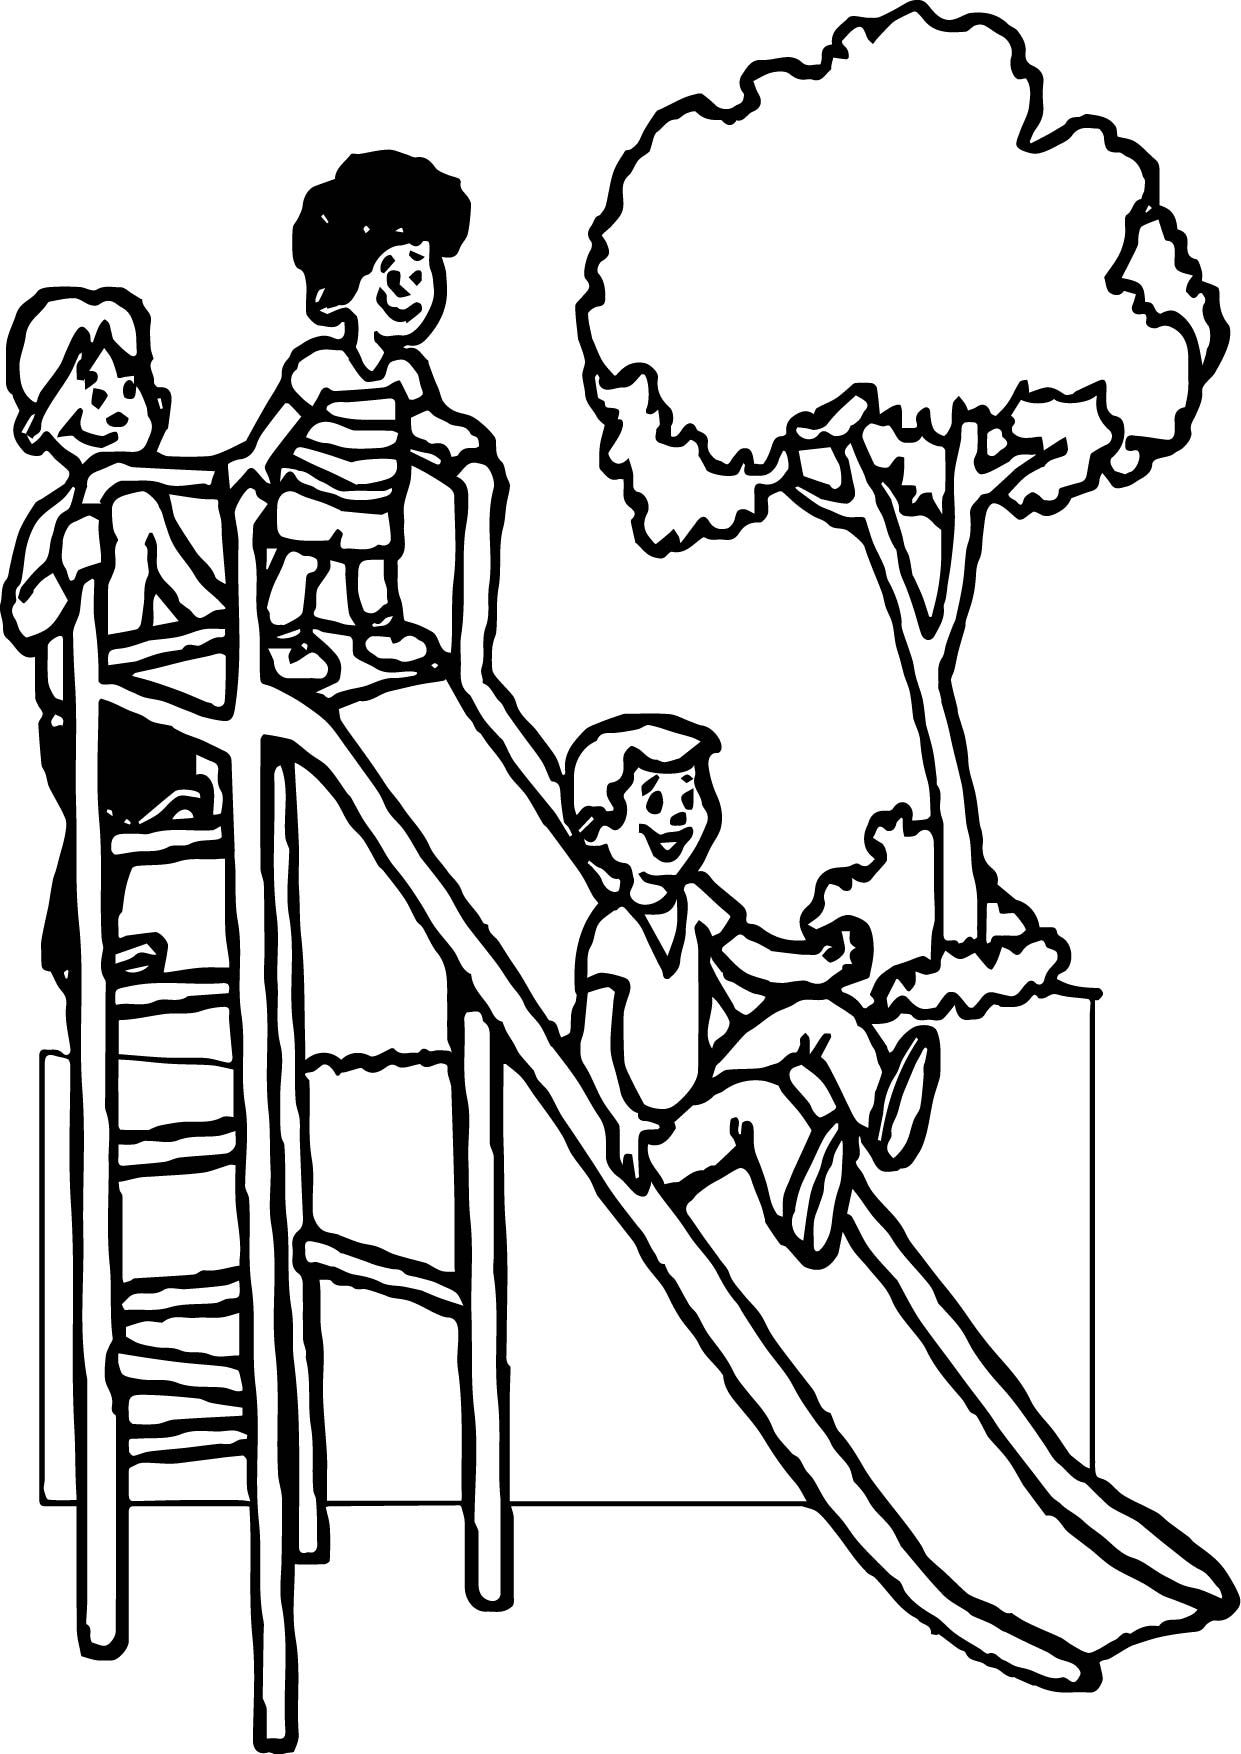 Awesome Summer Slide Kids Coloring Page